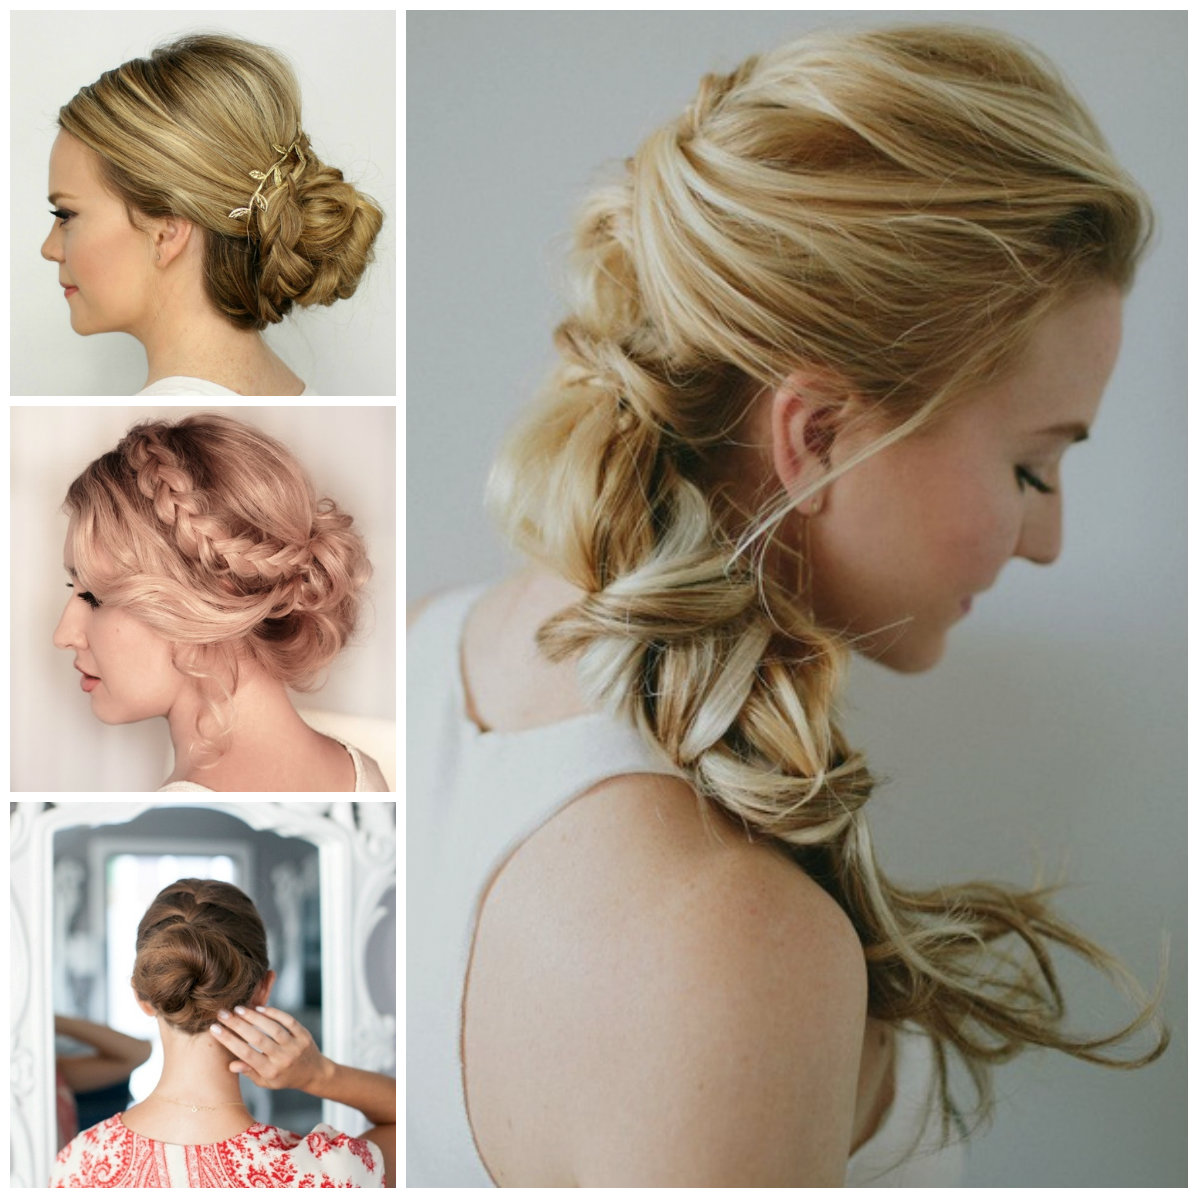 Best Hairstyles for Special Events